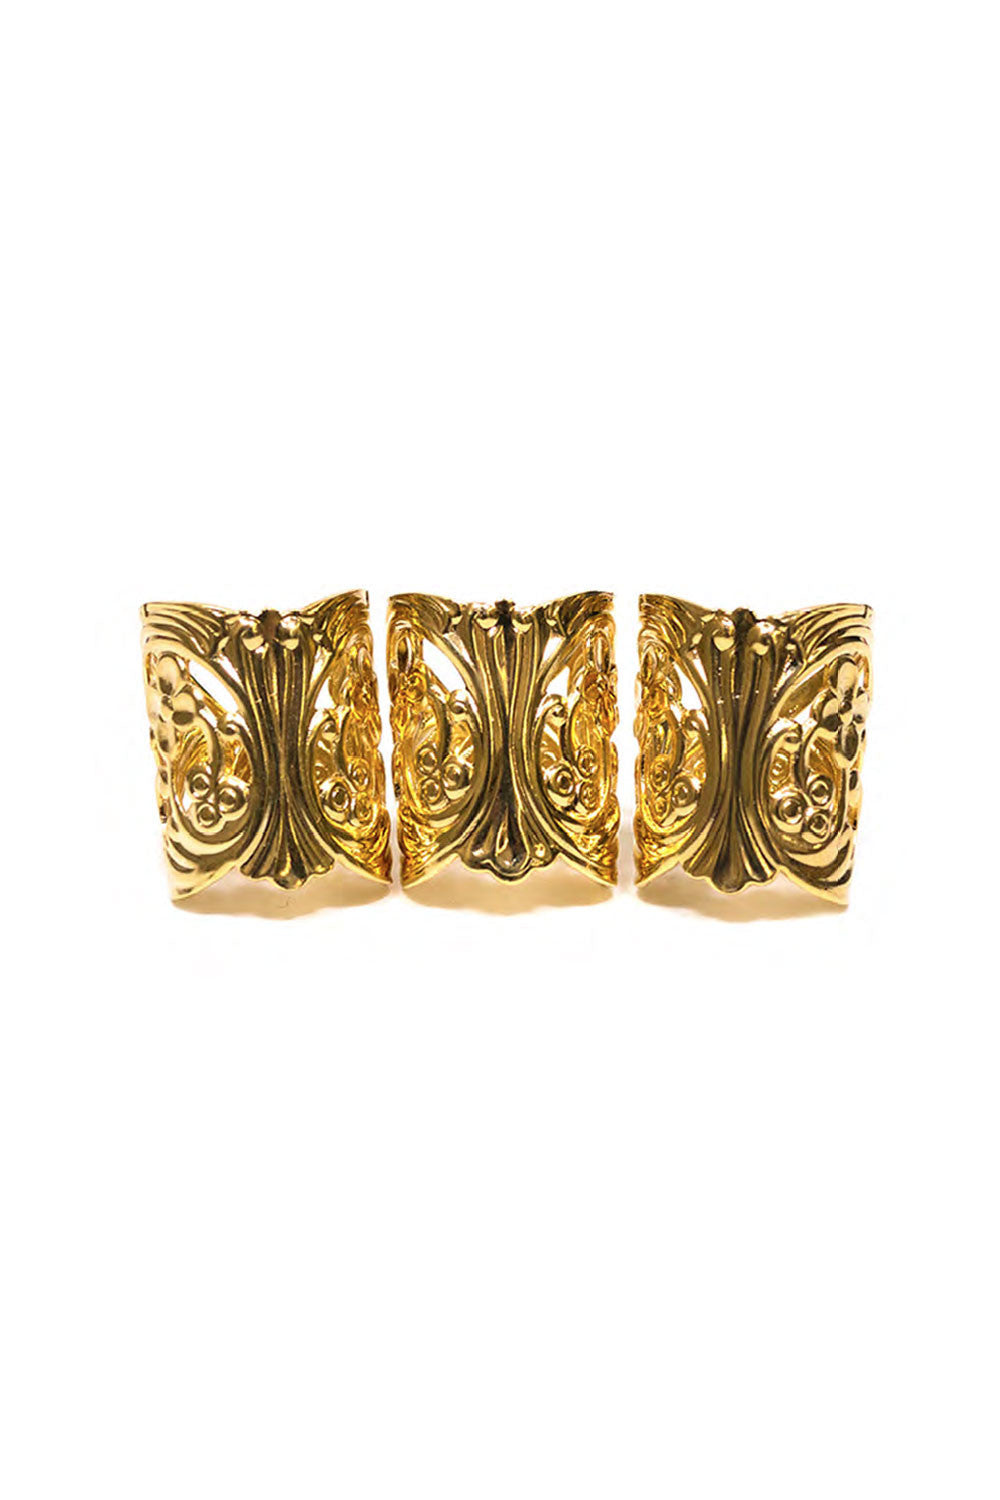 LACE CUFF RINGS IN GOLD (SET OF 3)